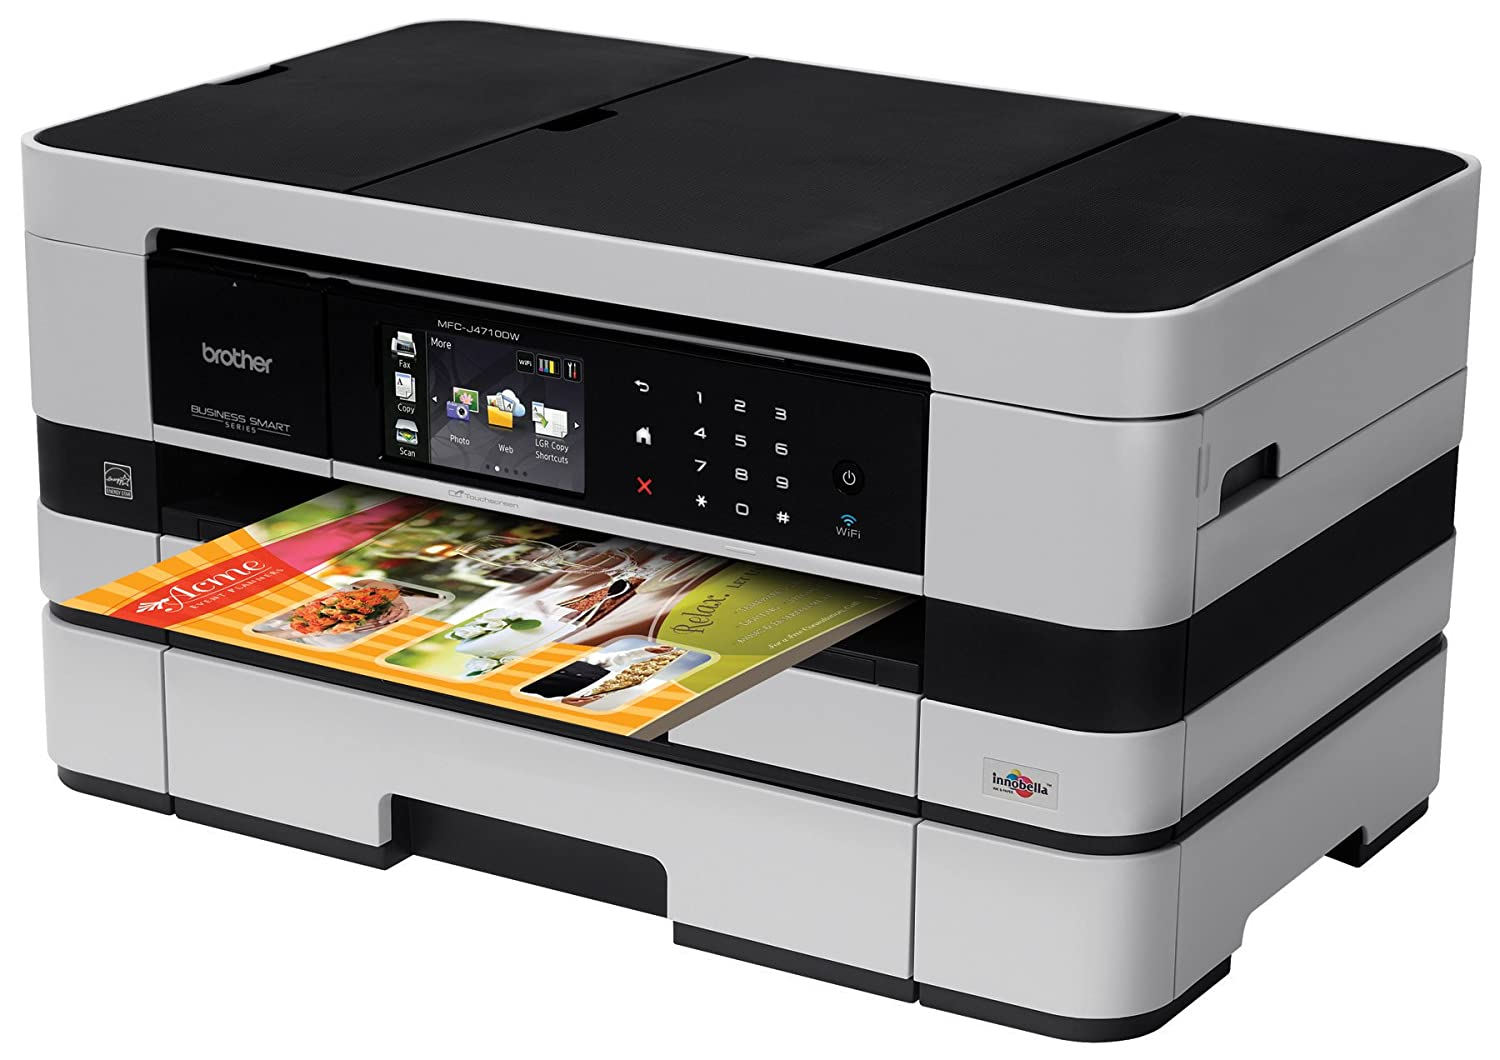 BROTHER MFC-J4710DW PRINTER DRIVERS FOR MAC DOWNLOAD